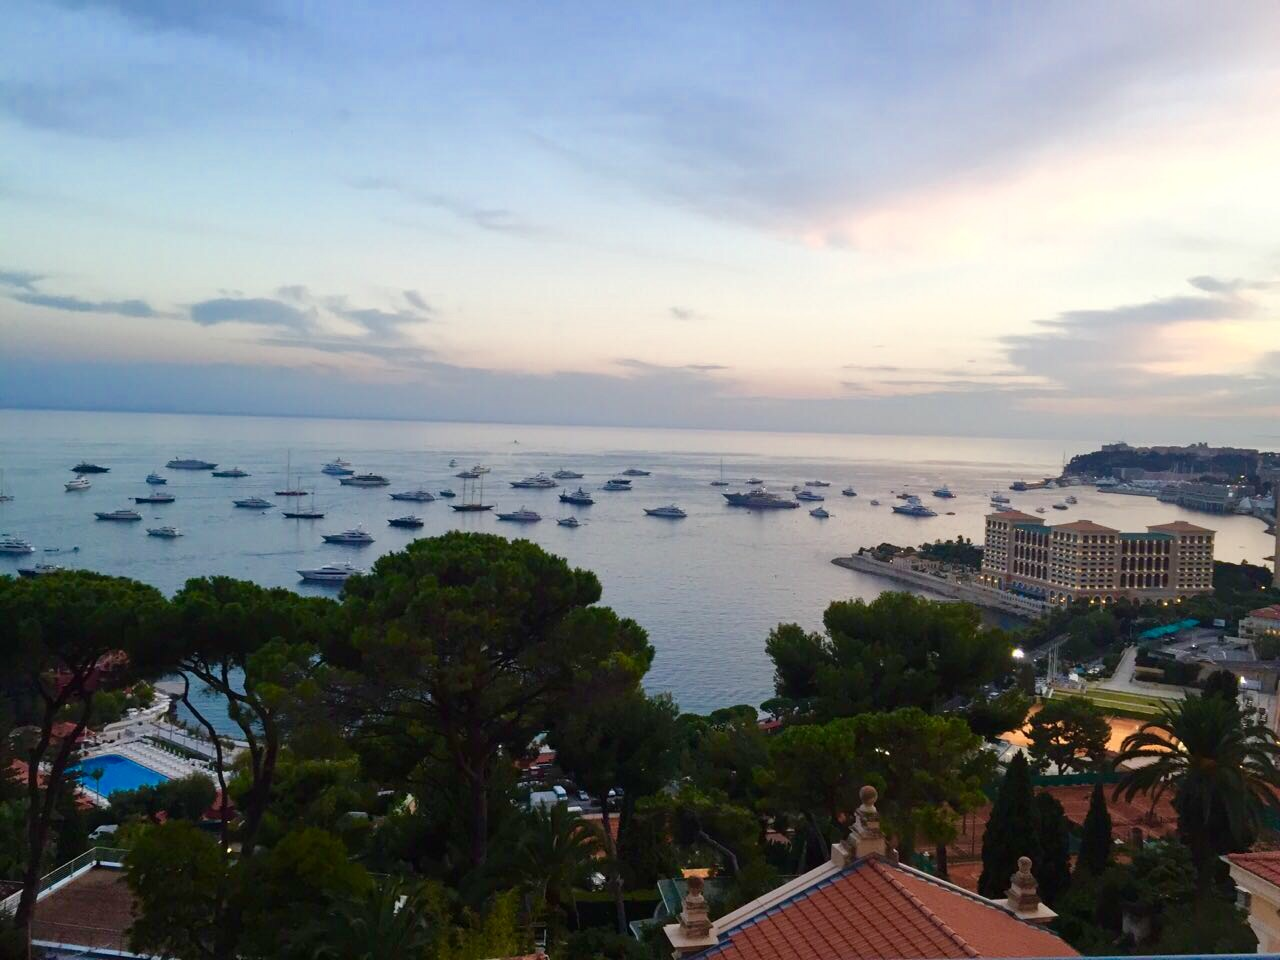 Monaco Yacht Show: 5 places to dine and wine in style